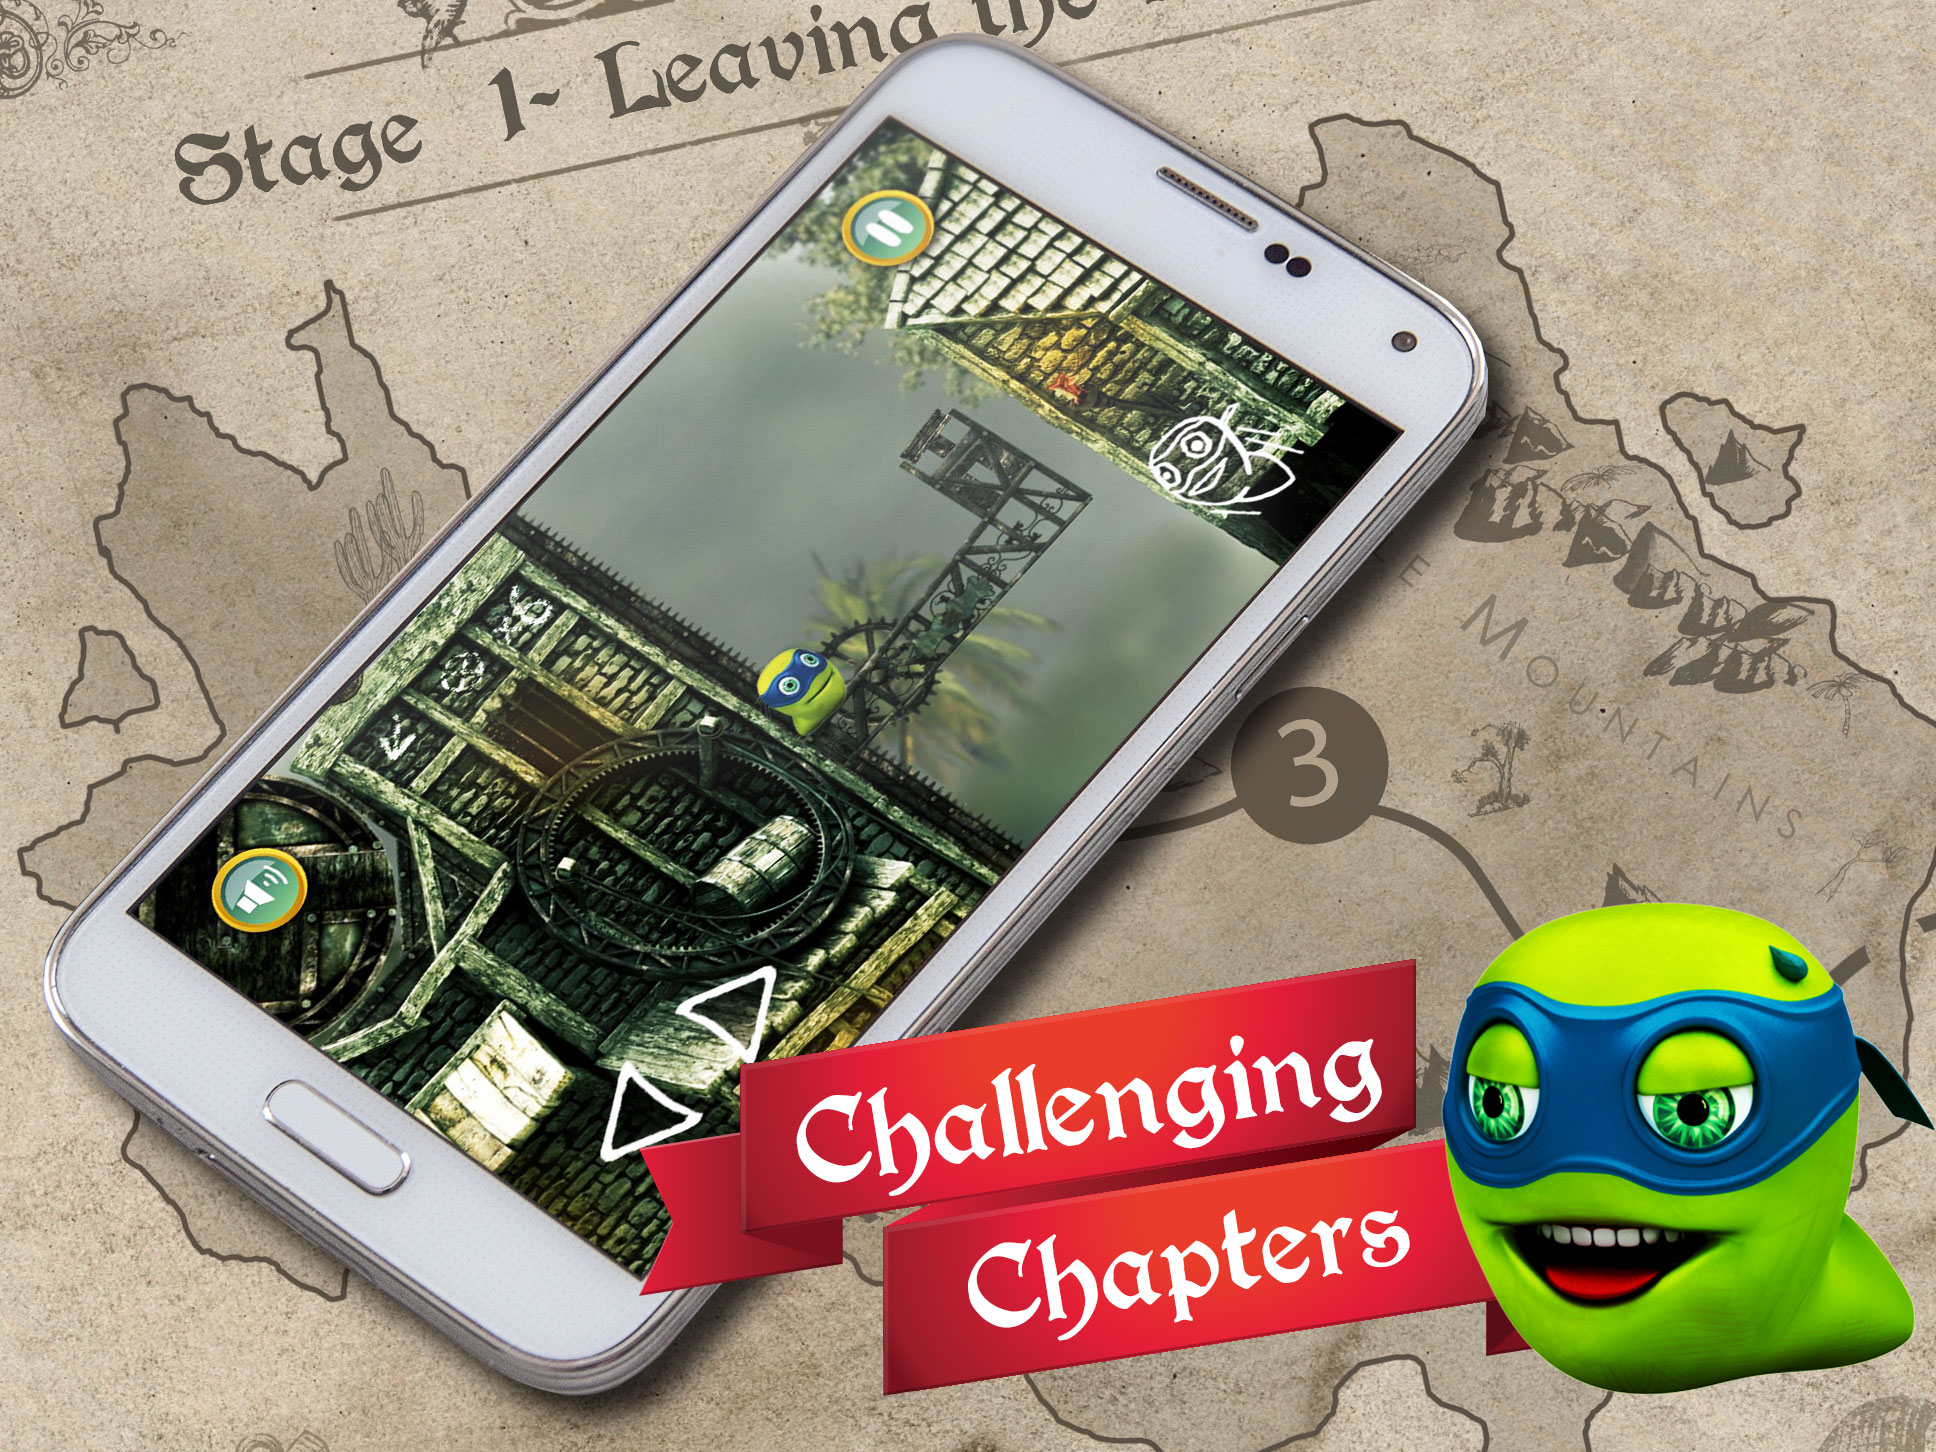 Challenging Chapters